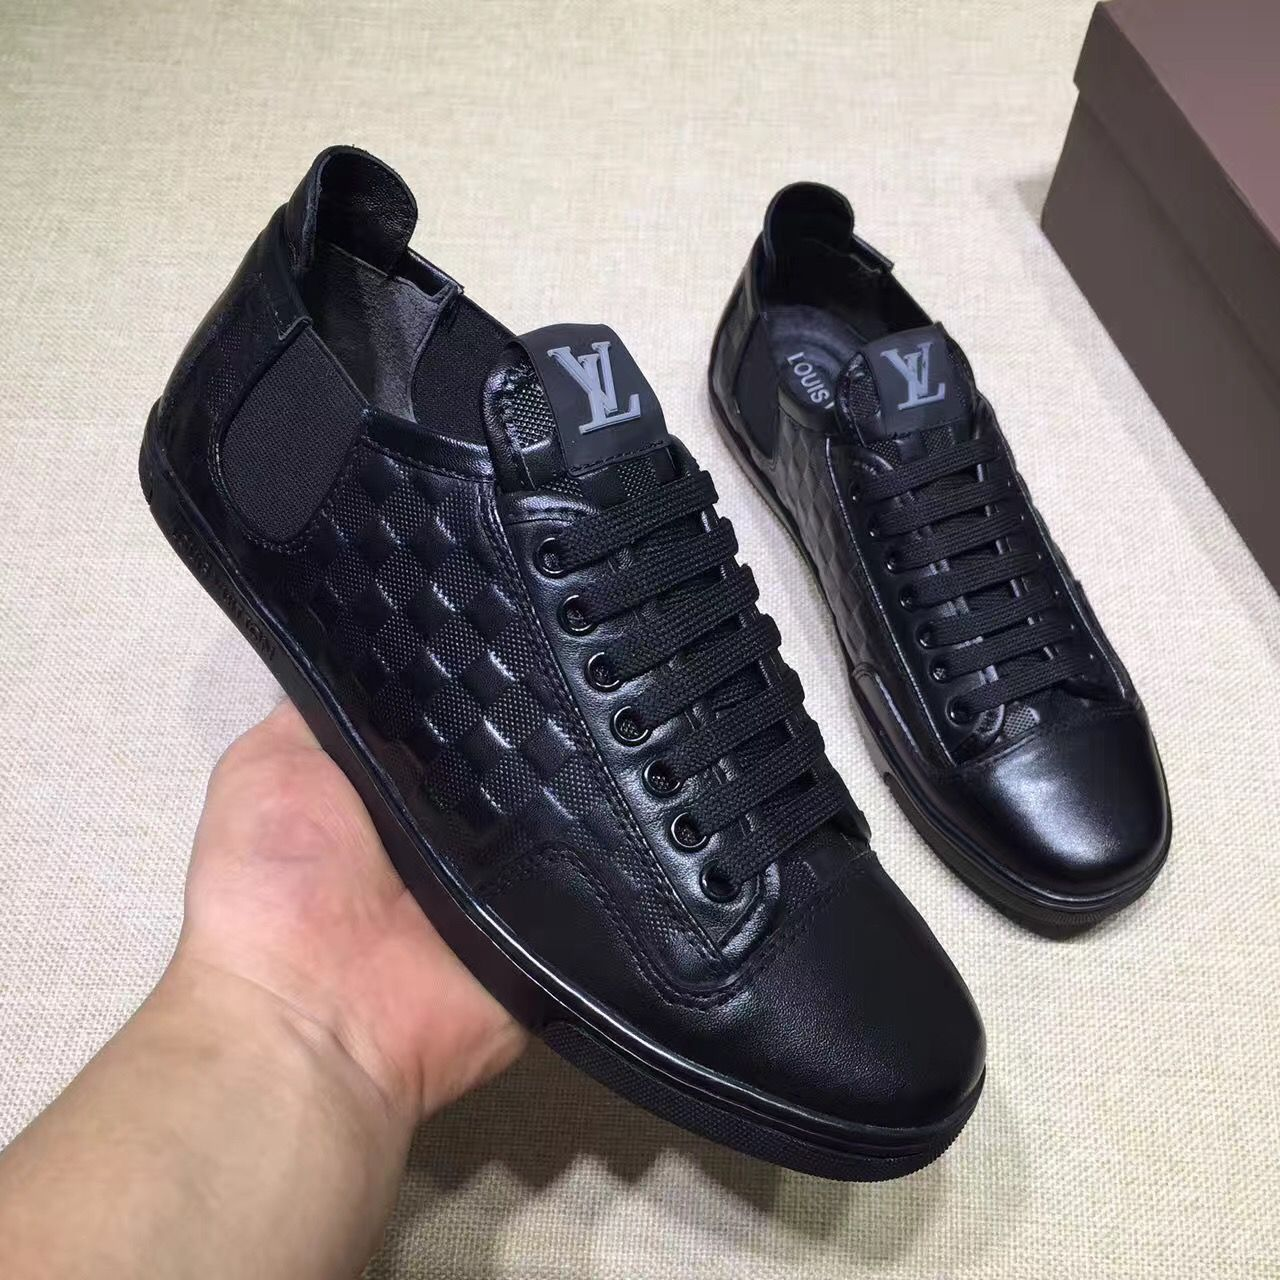 Louis Vuitton lv man shoes leather sneakers